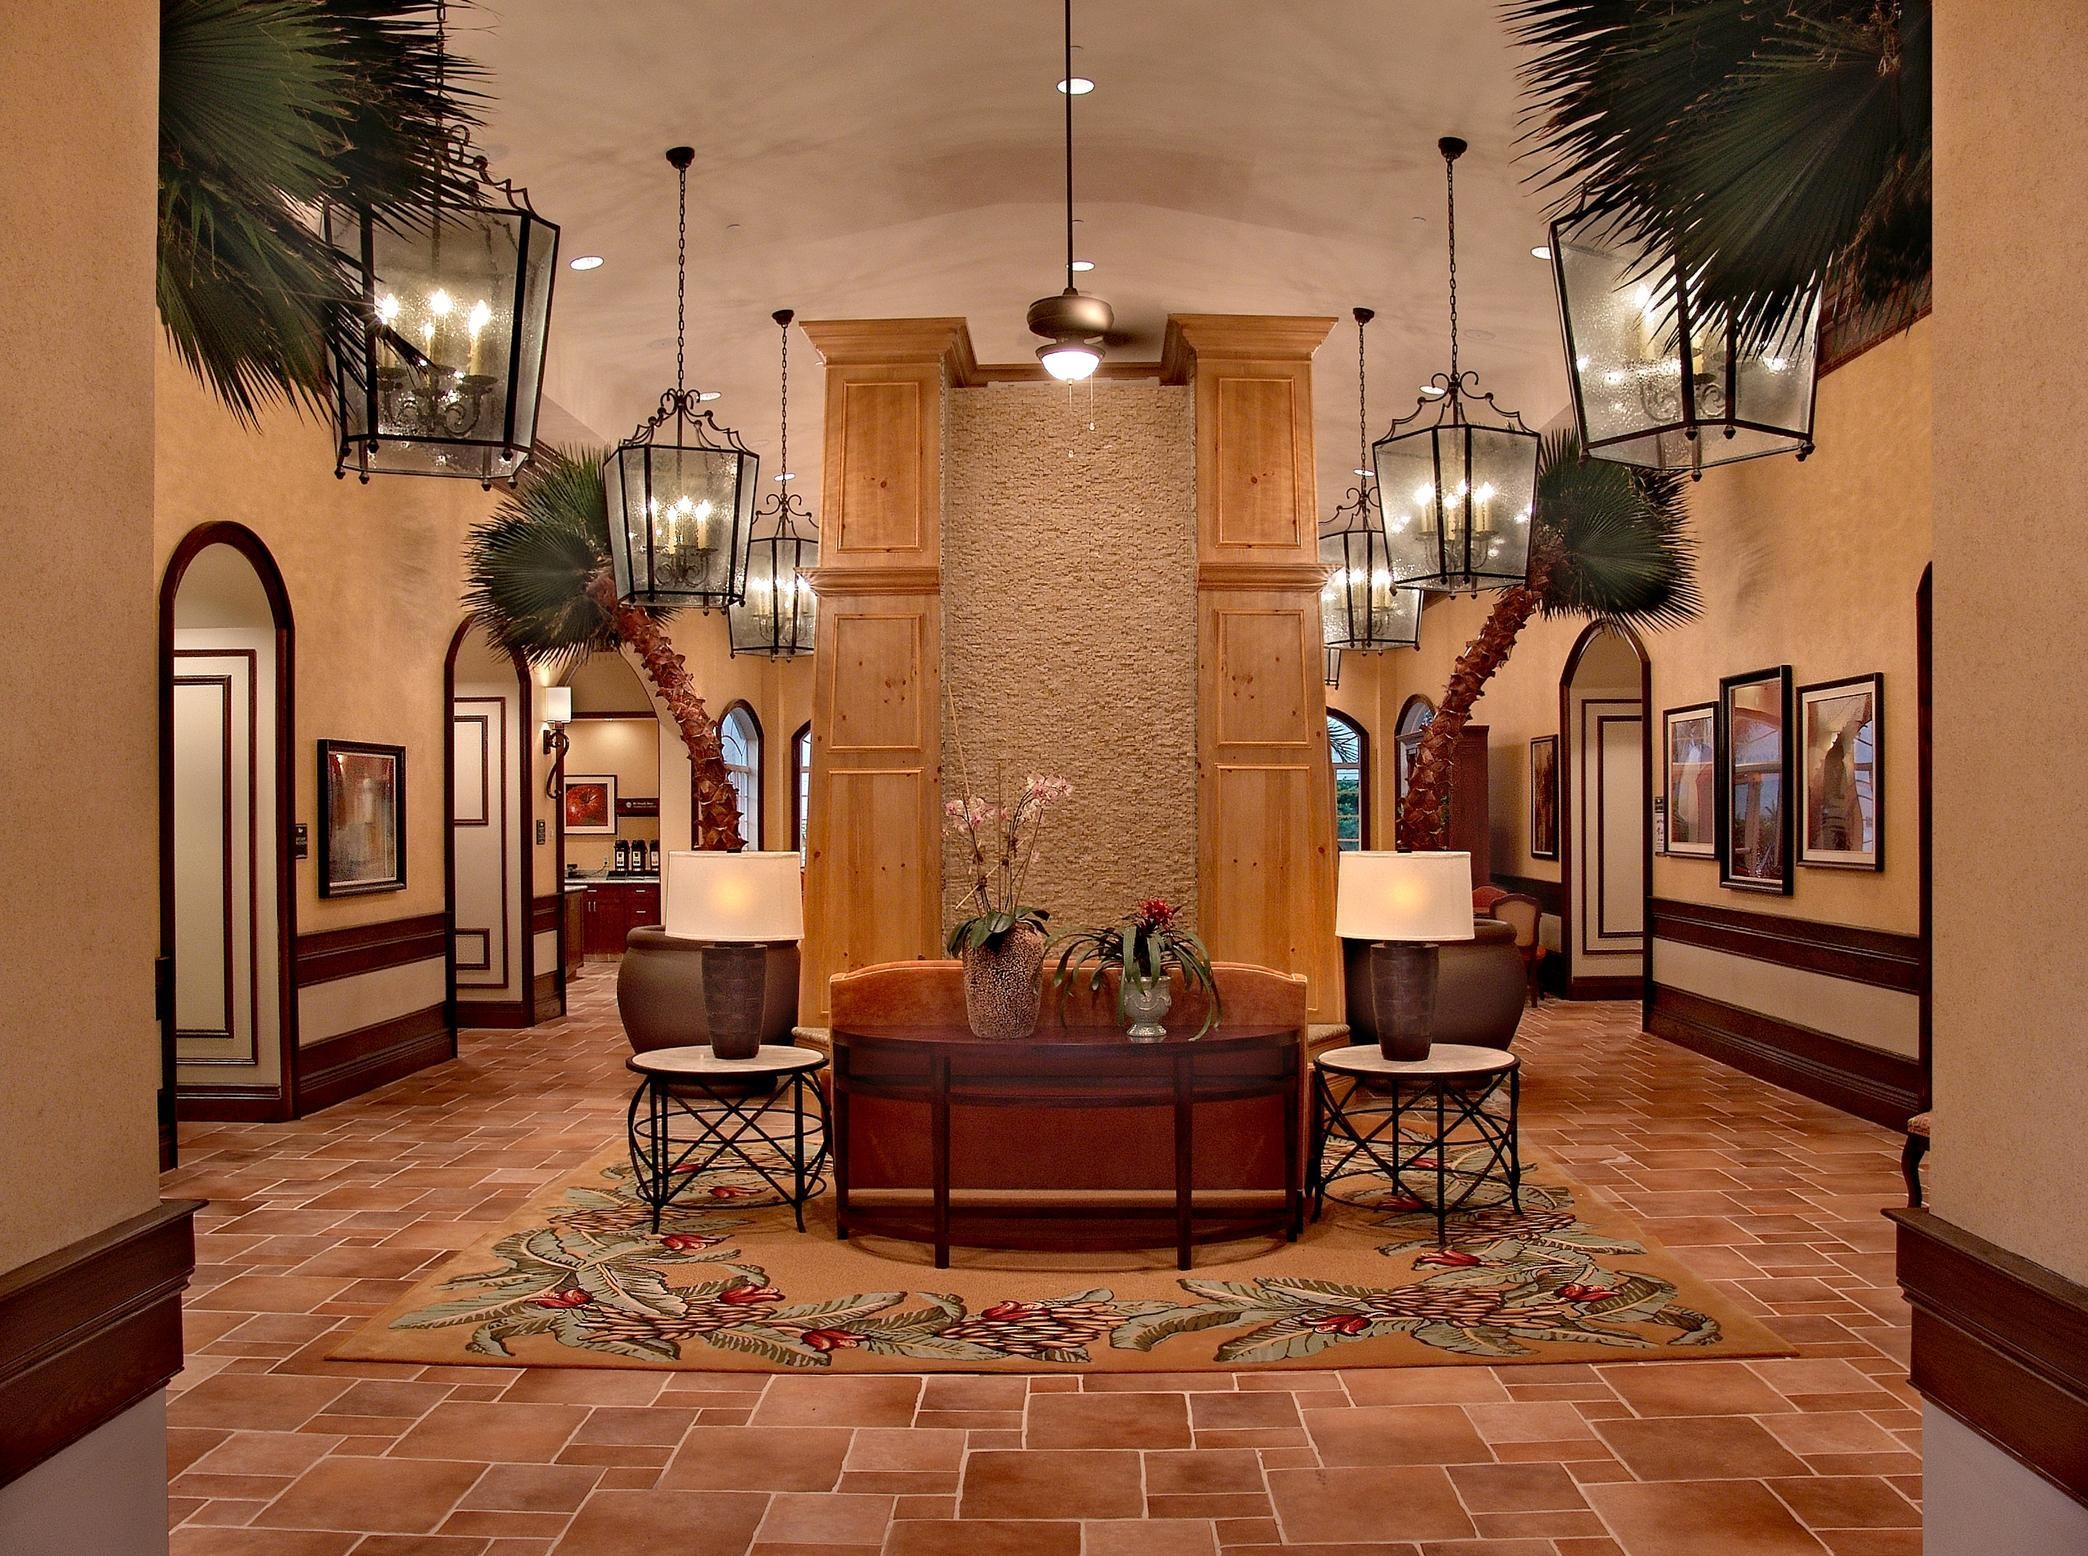 Homewood Suites by Hilton Palm Beach Gardens 4700 Donald Ross Road ...